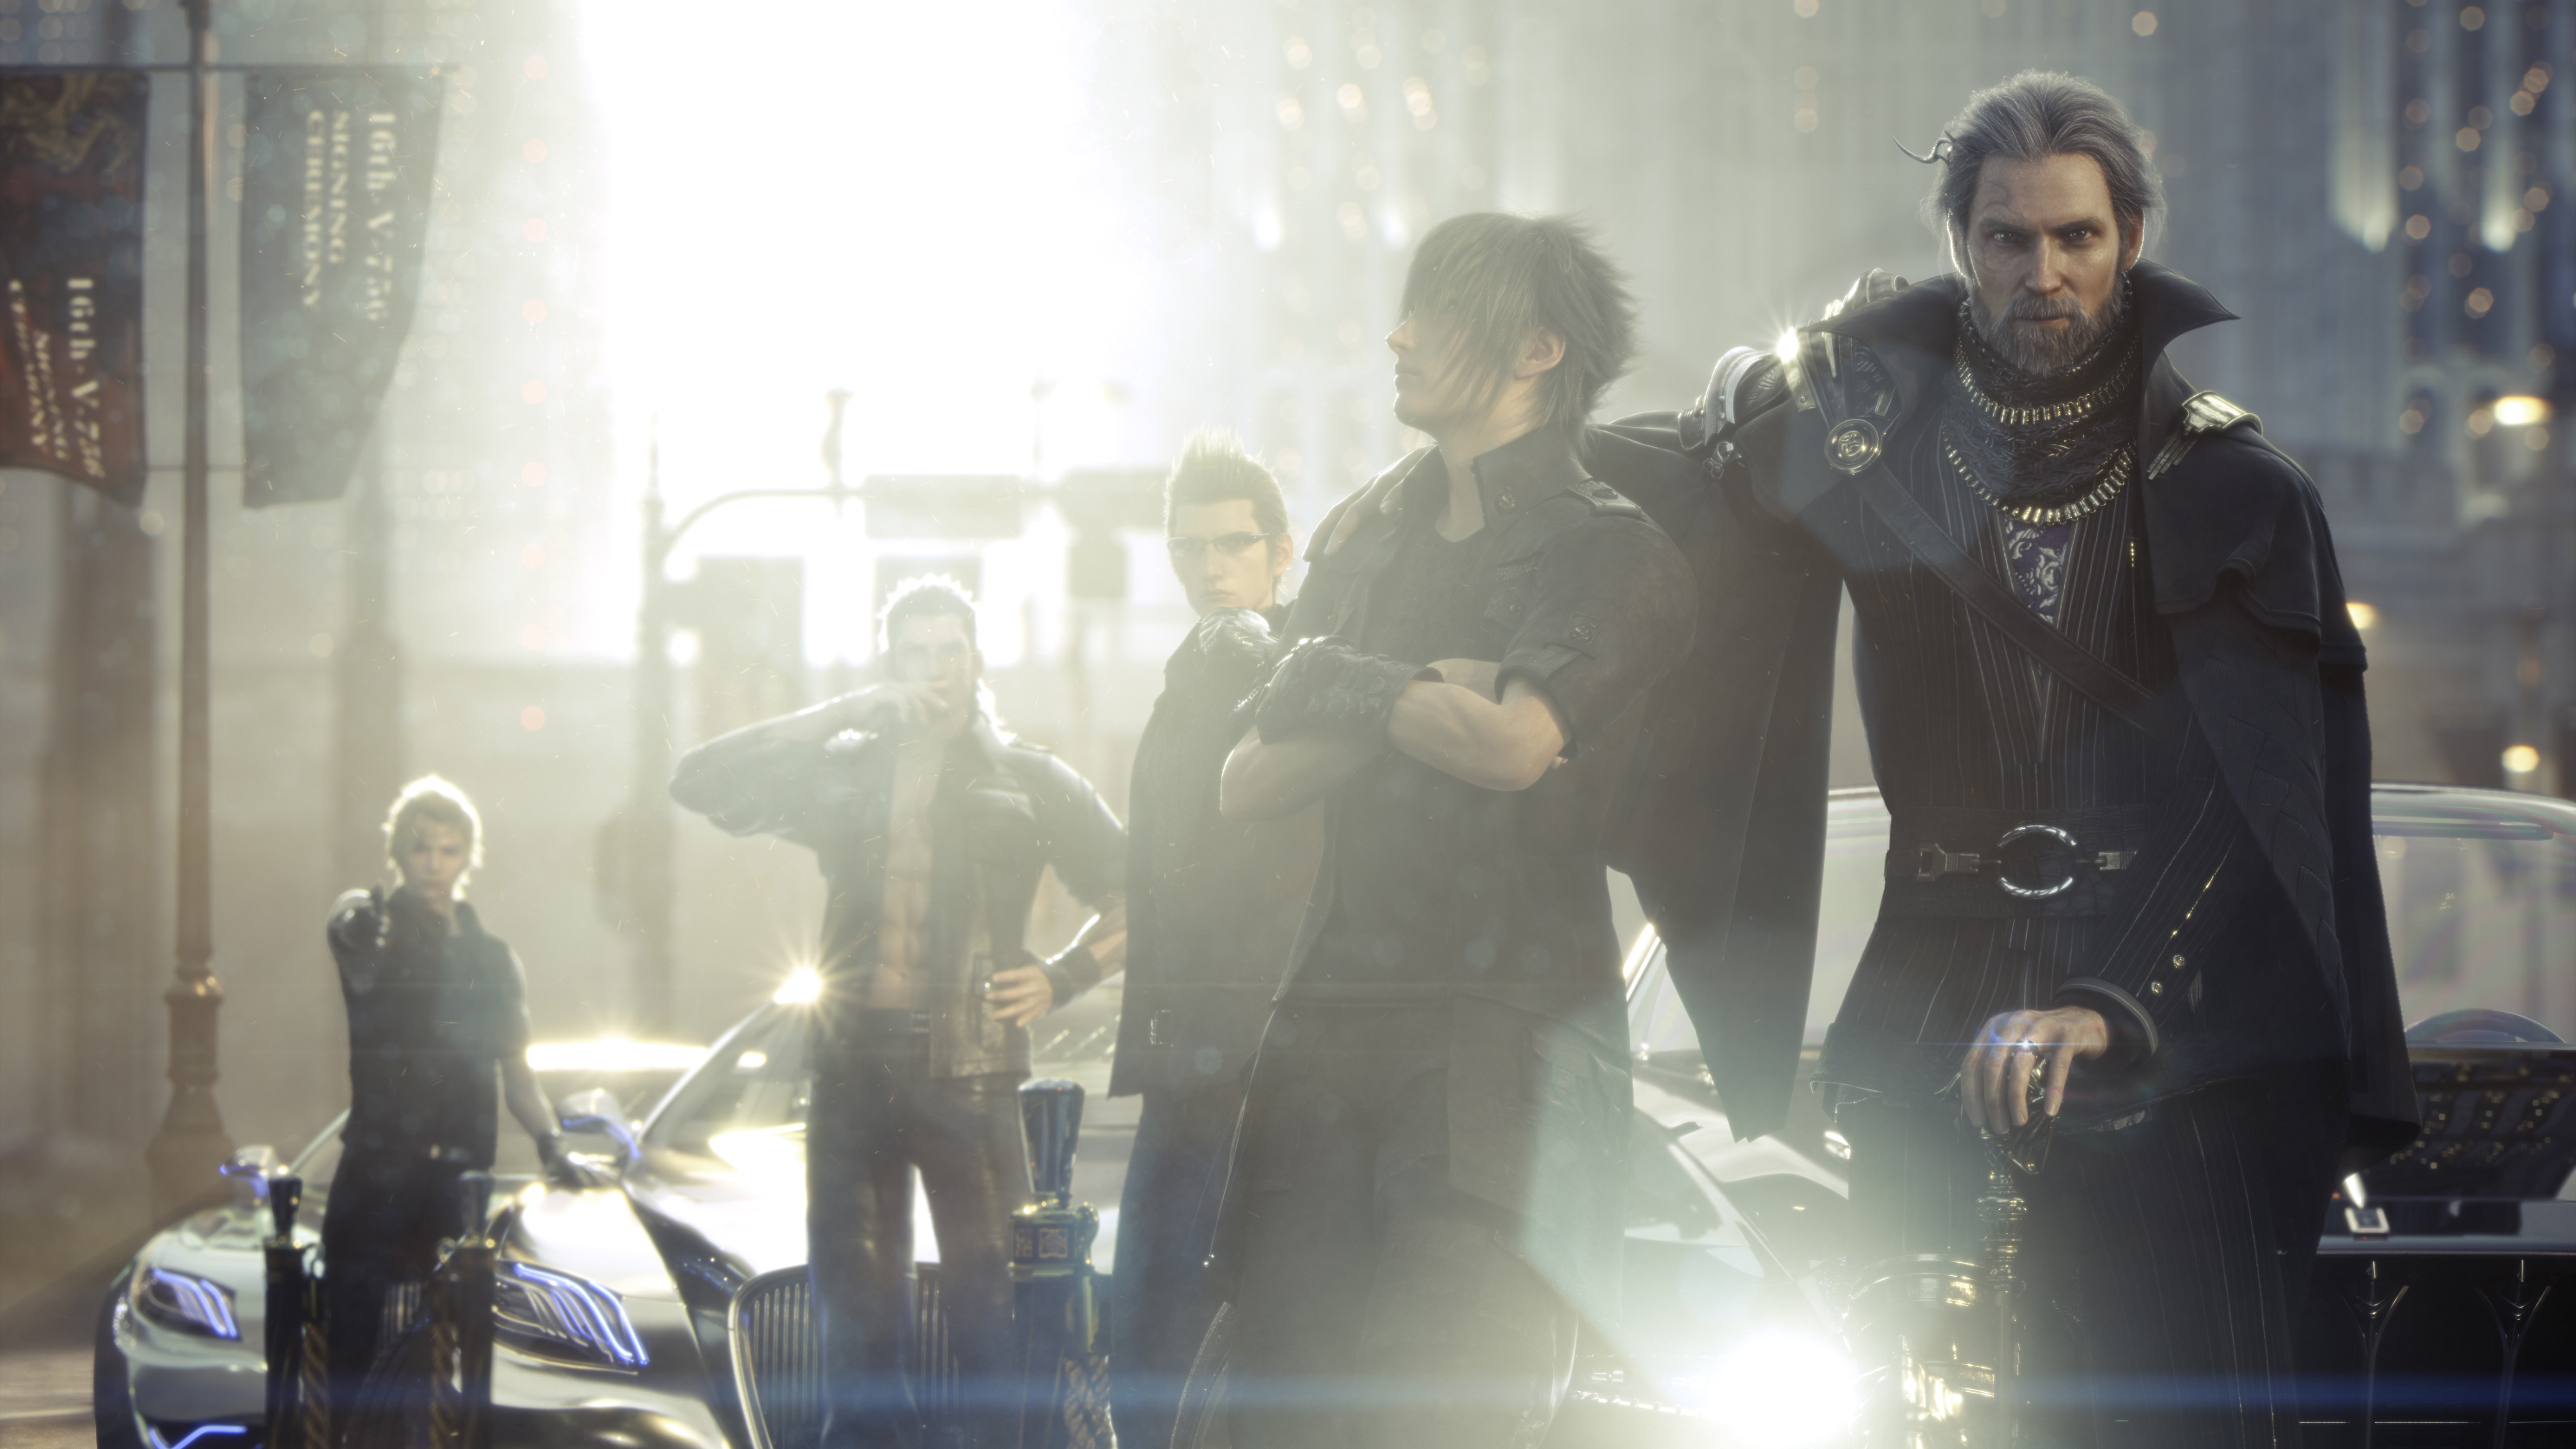 4k Final Fantasy Xv Hd Games 4k Wallpapers Images: Final Fantasy XV Royal Edition, HD Games, 4k Wallpapers